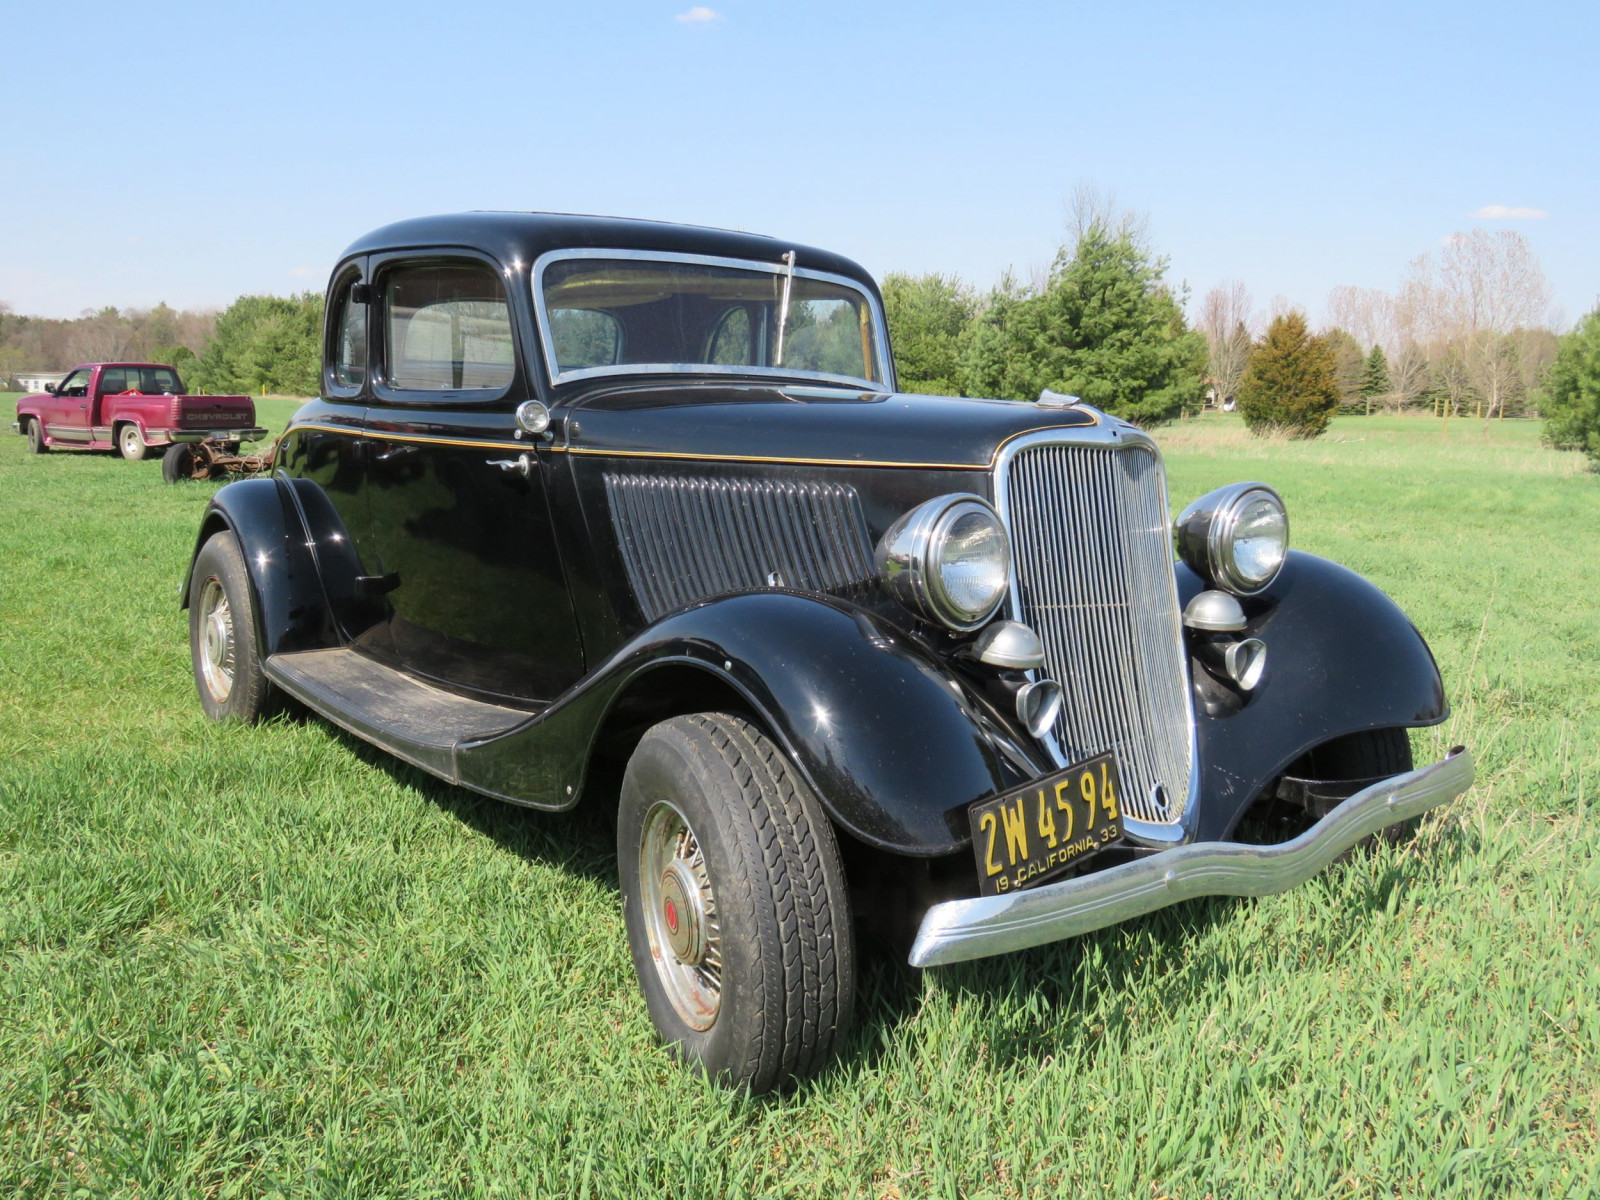 1933 Ford Coupe - Image 1